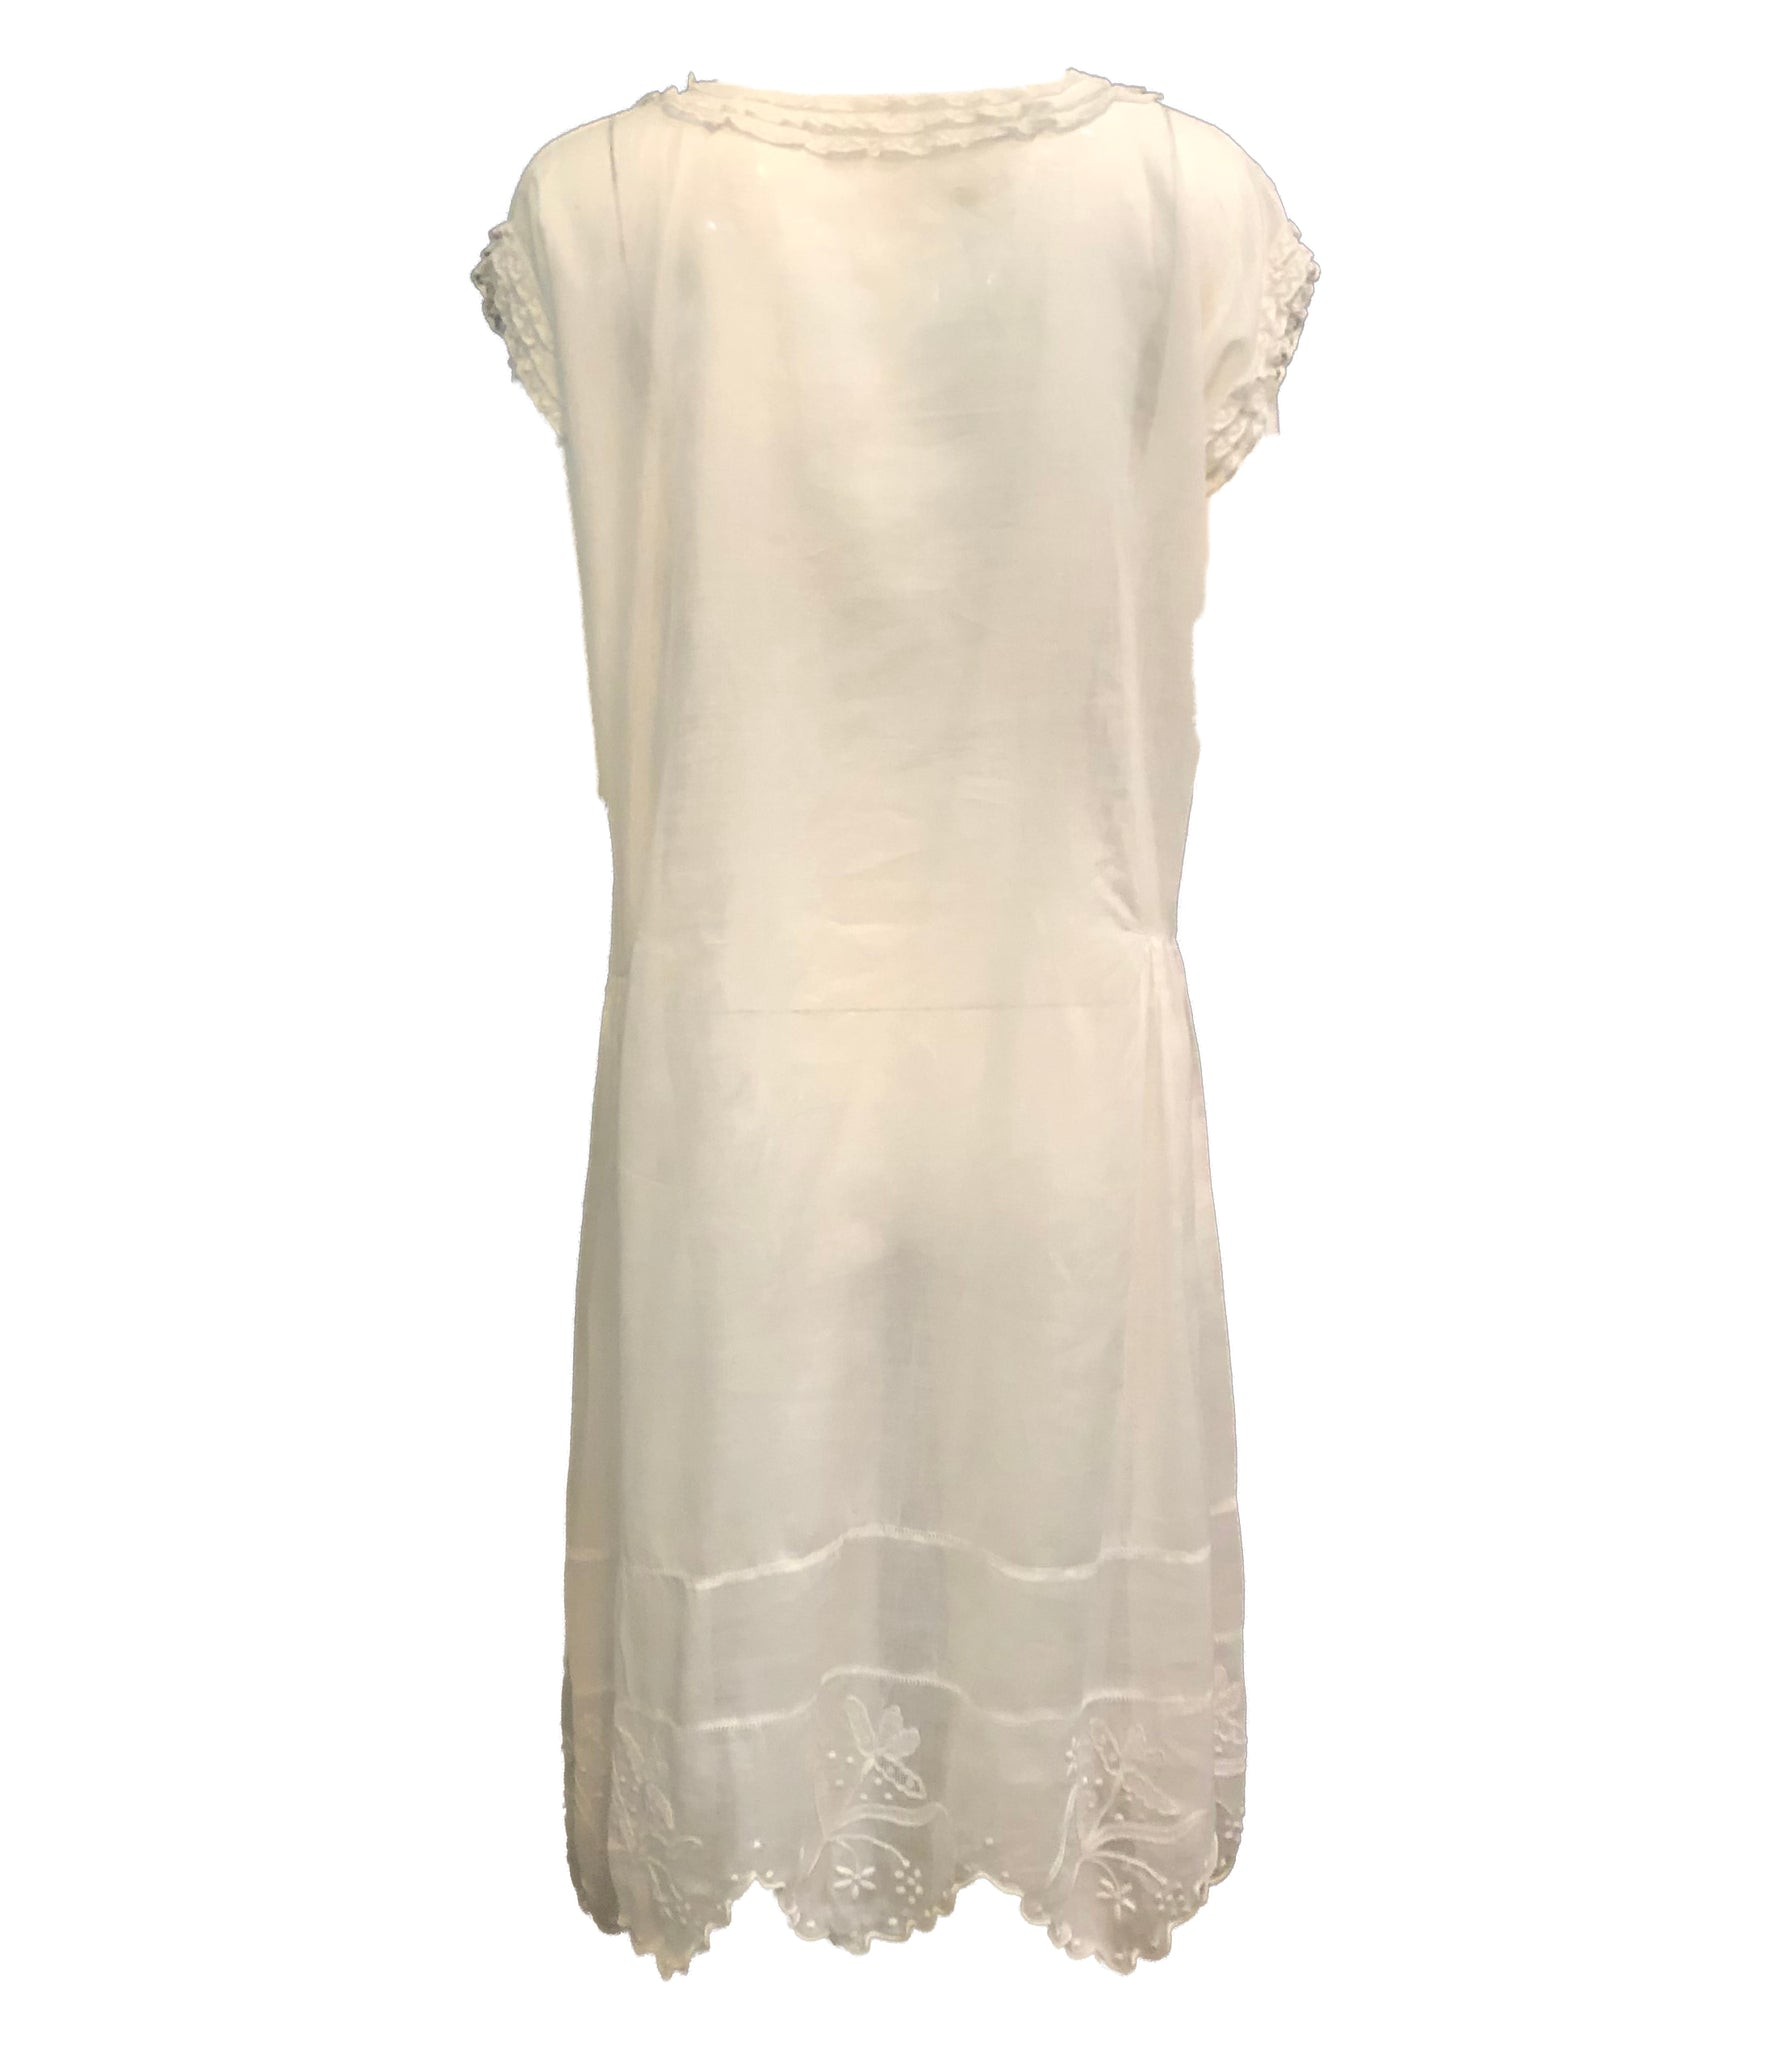 20s Dress White Cotton Voile with Delicate Embroidery and Lace trim BACK 2 of 4